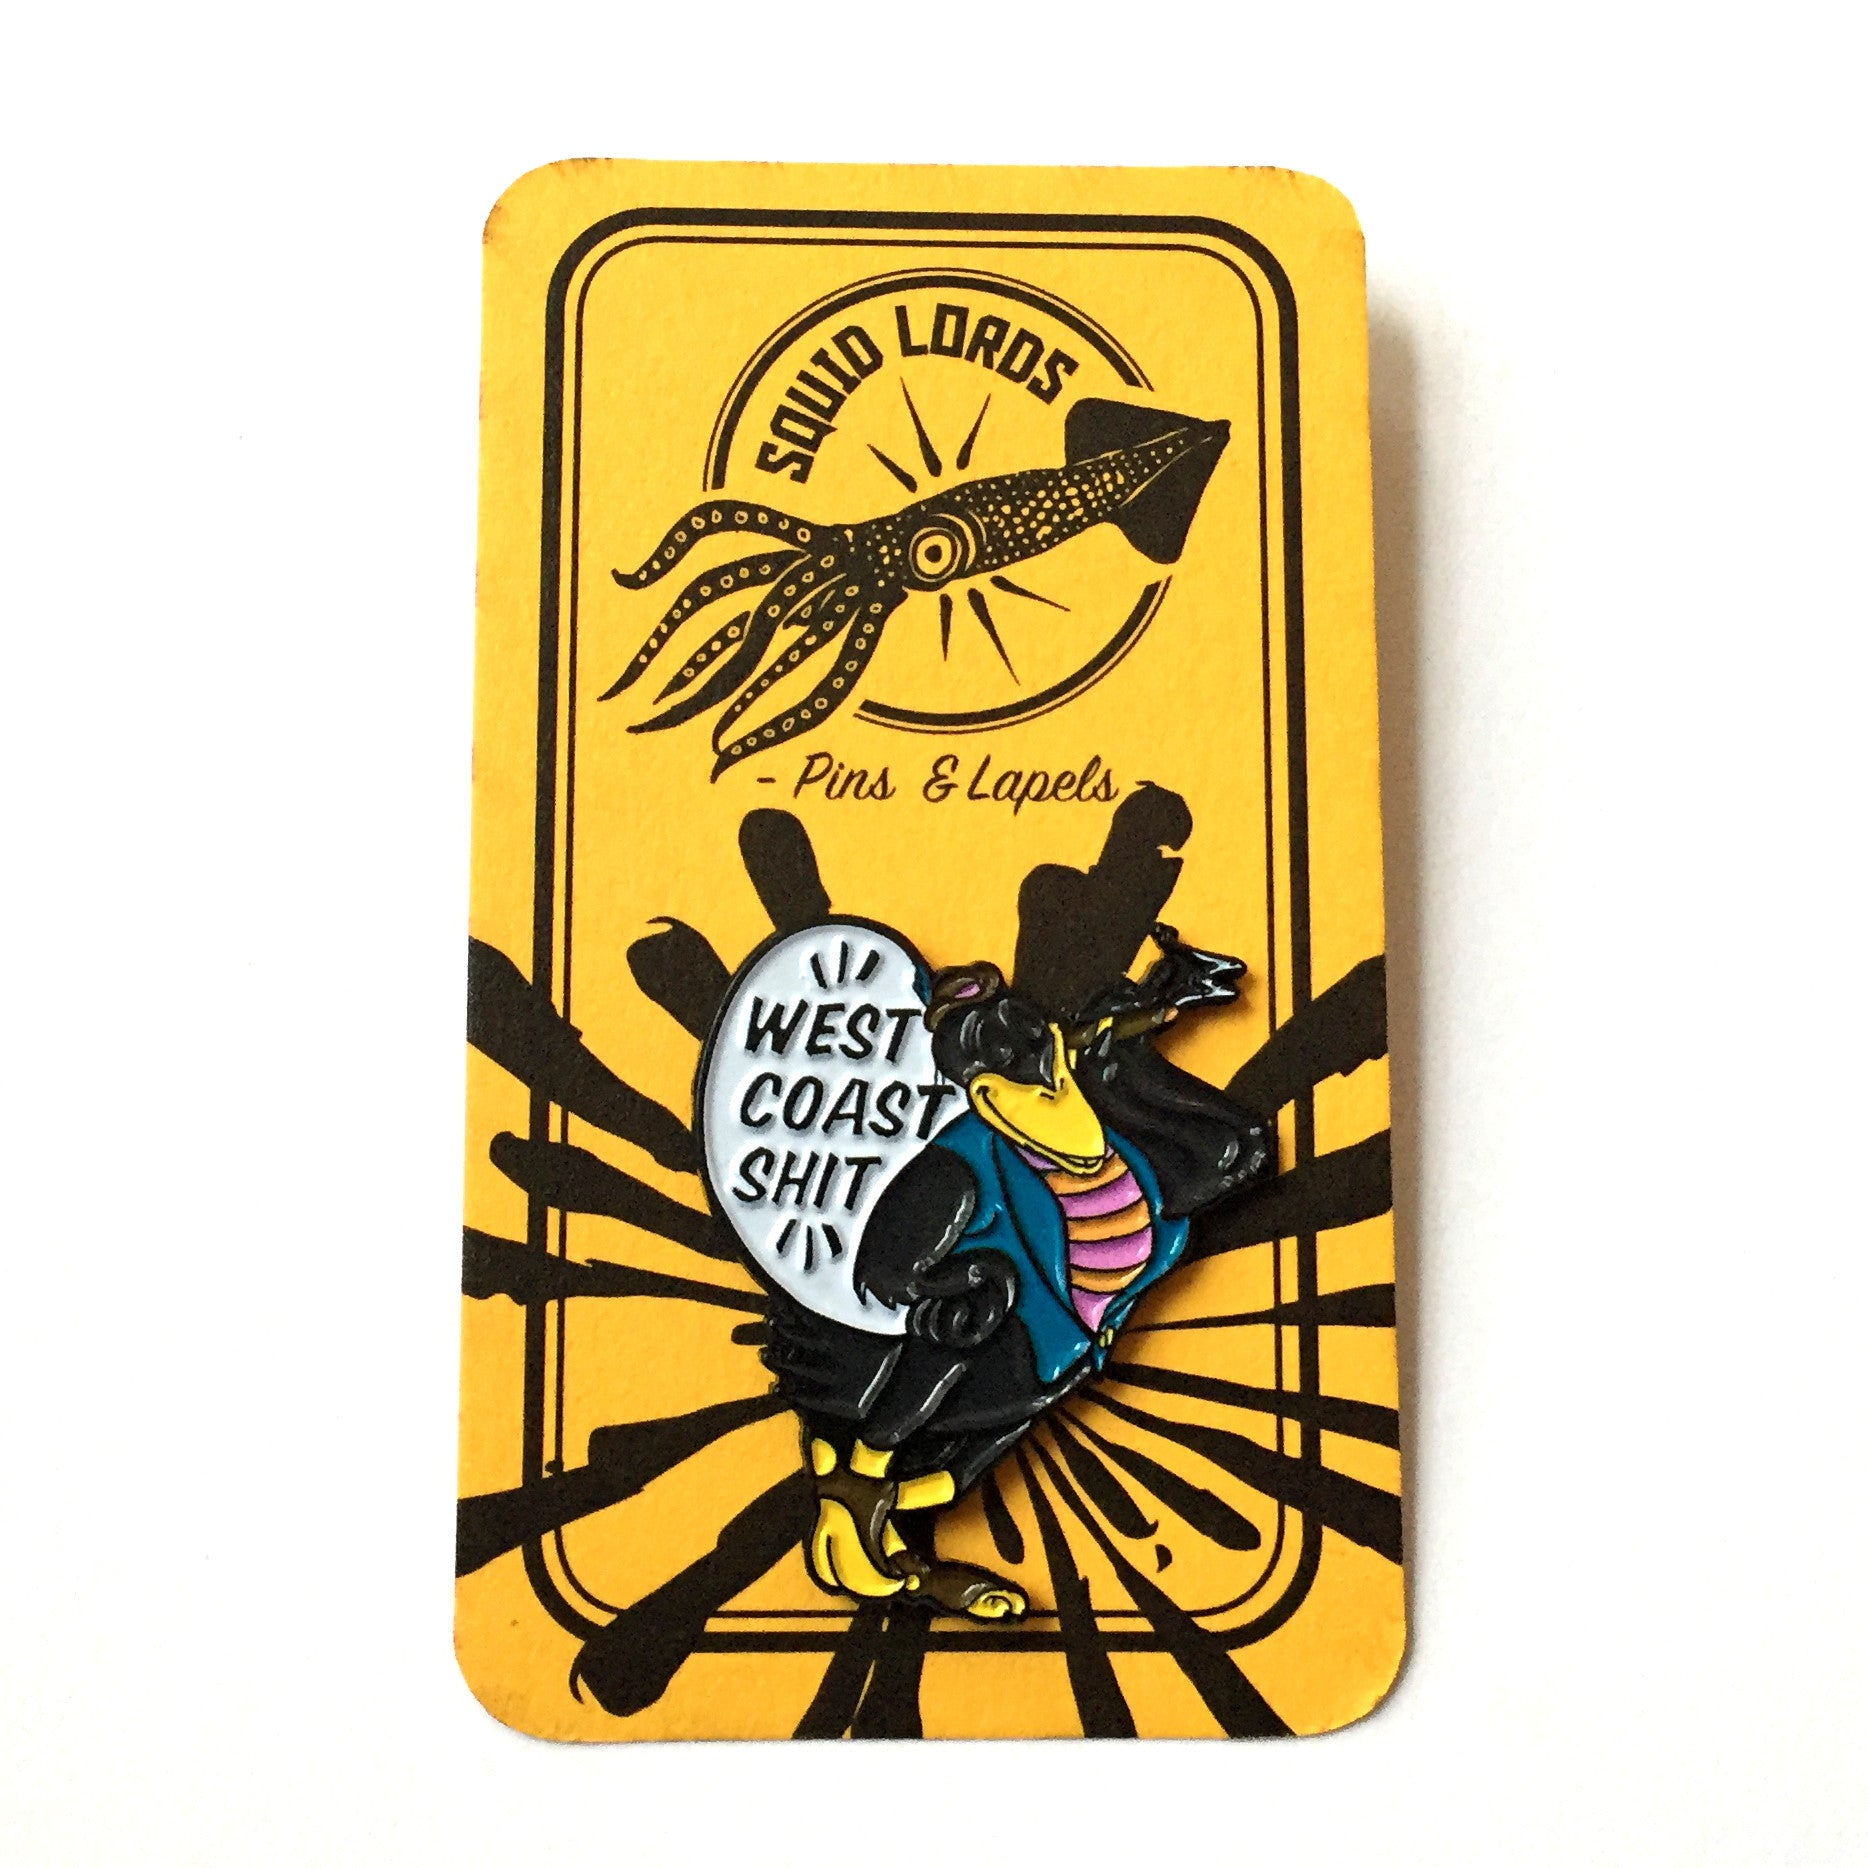 West Coast pin